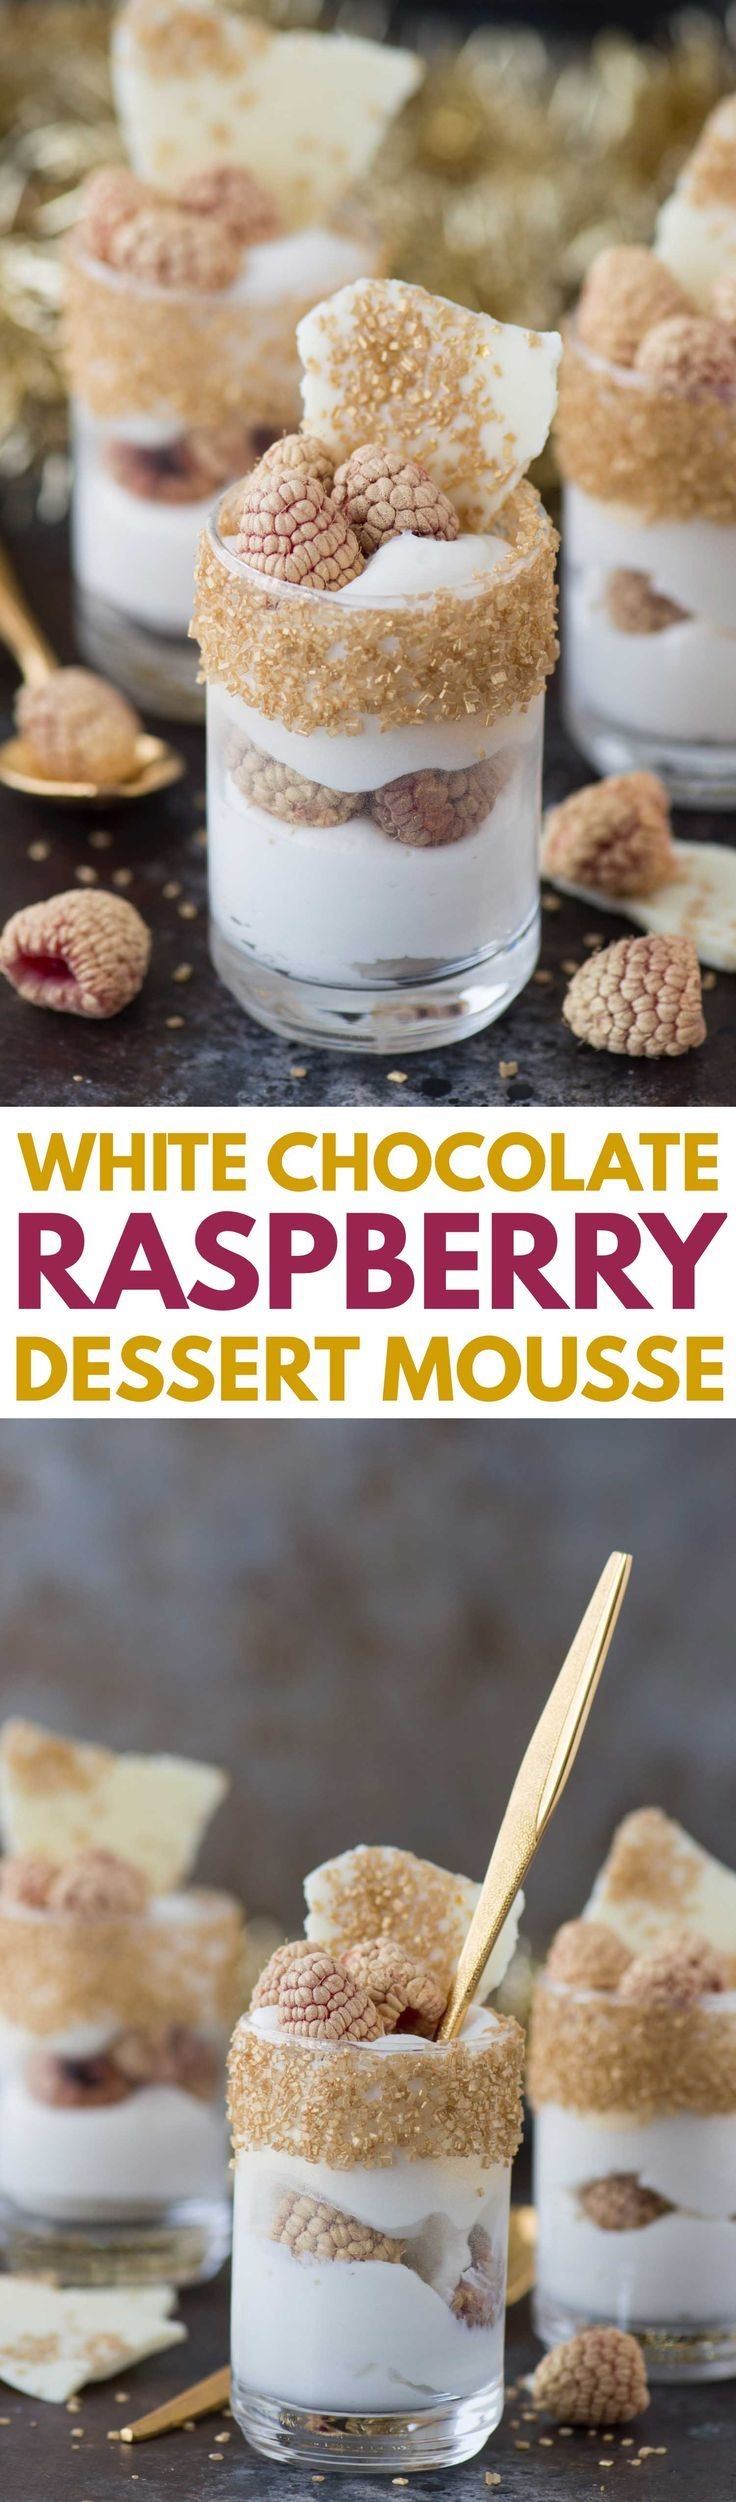 This easy white chocolate raspberry dessert mousse is the perfect gold dessert for New Year's Eve!